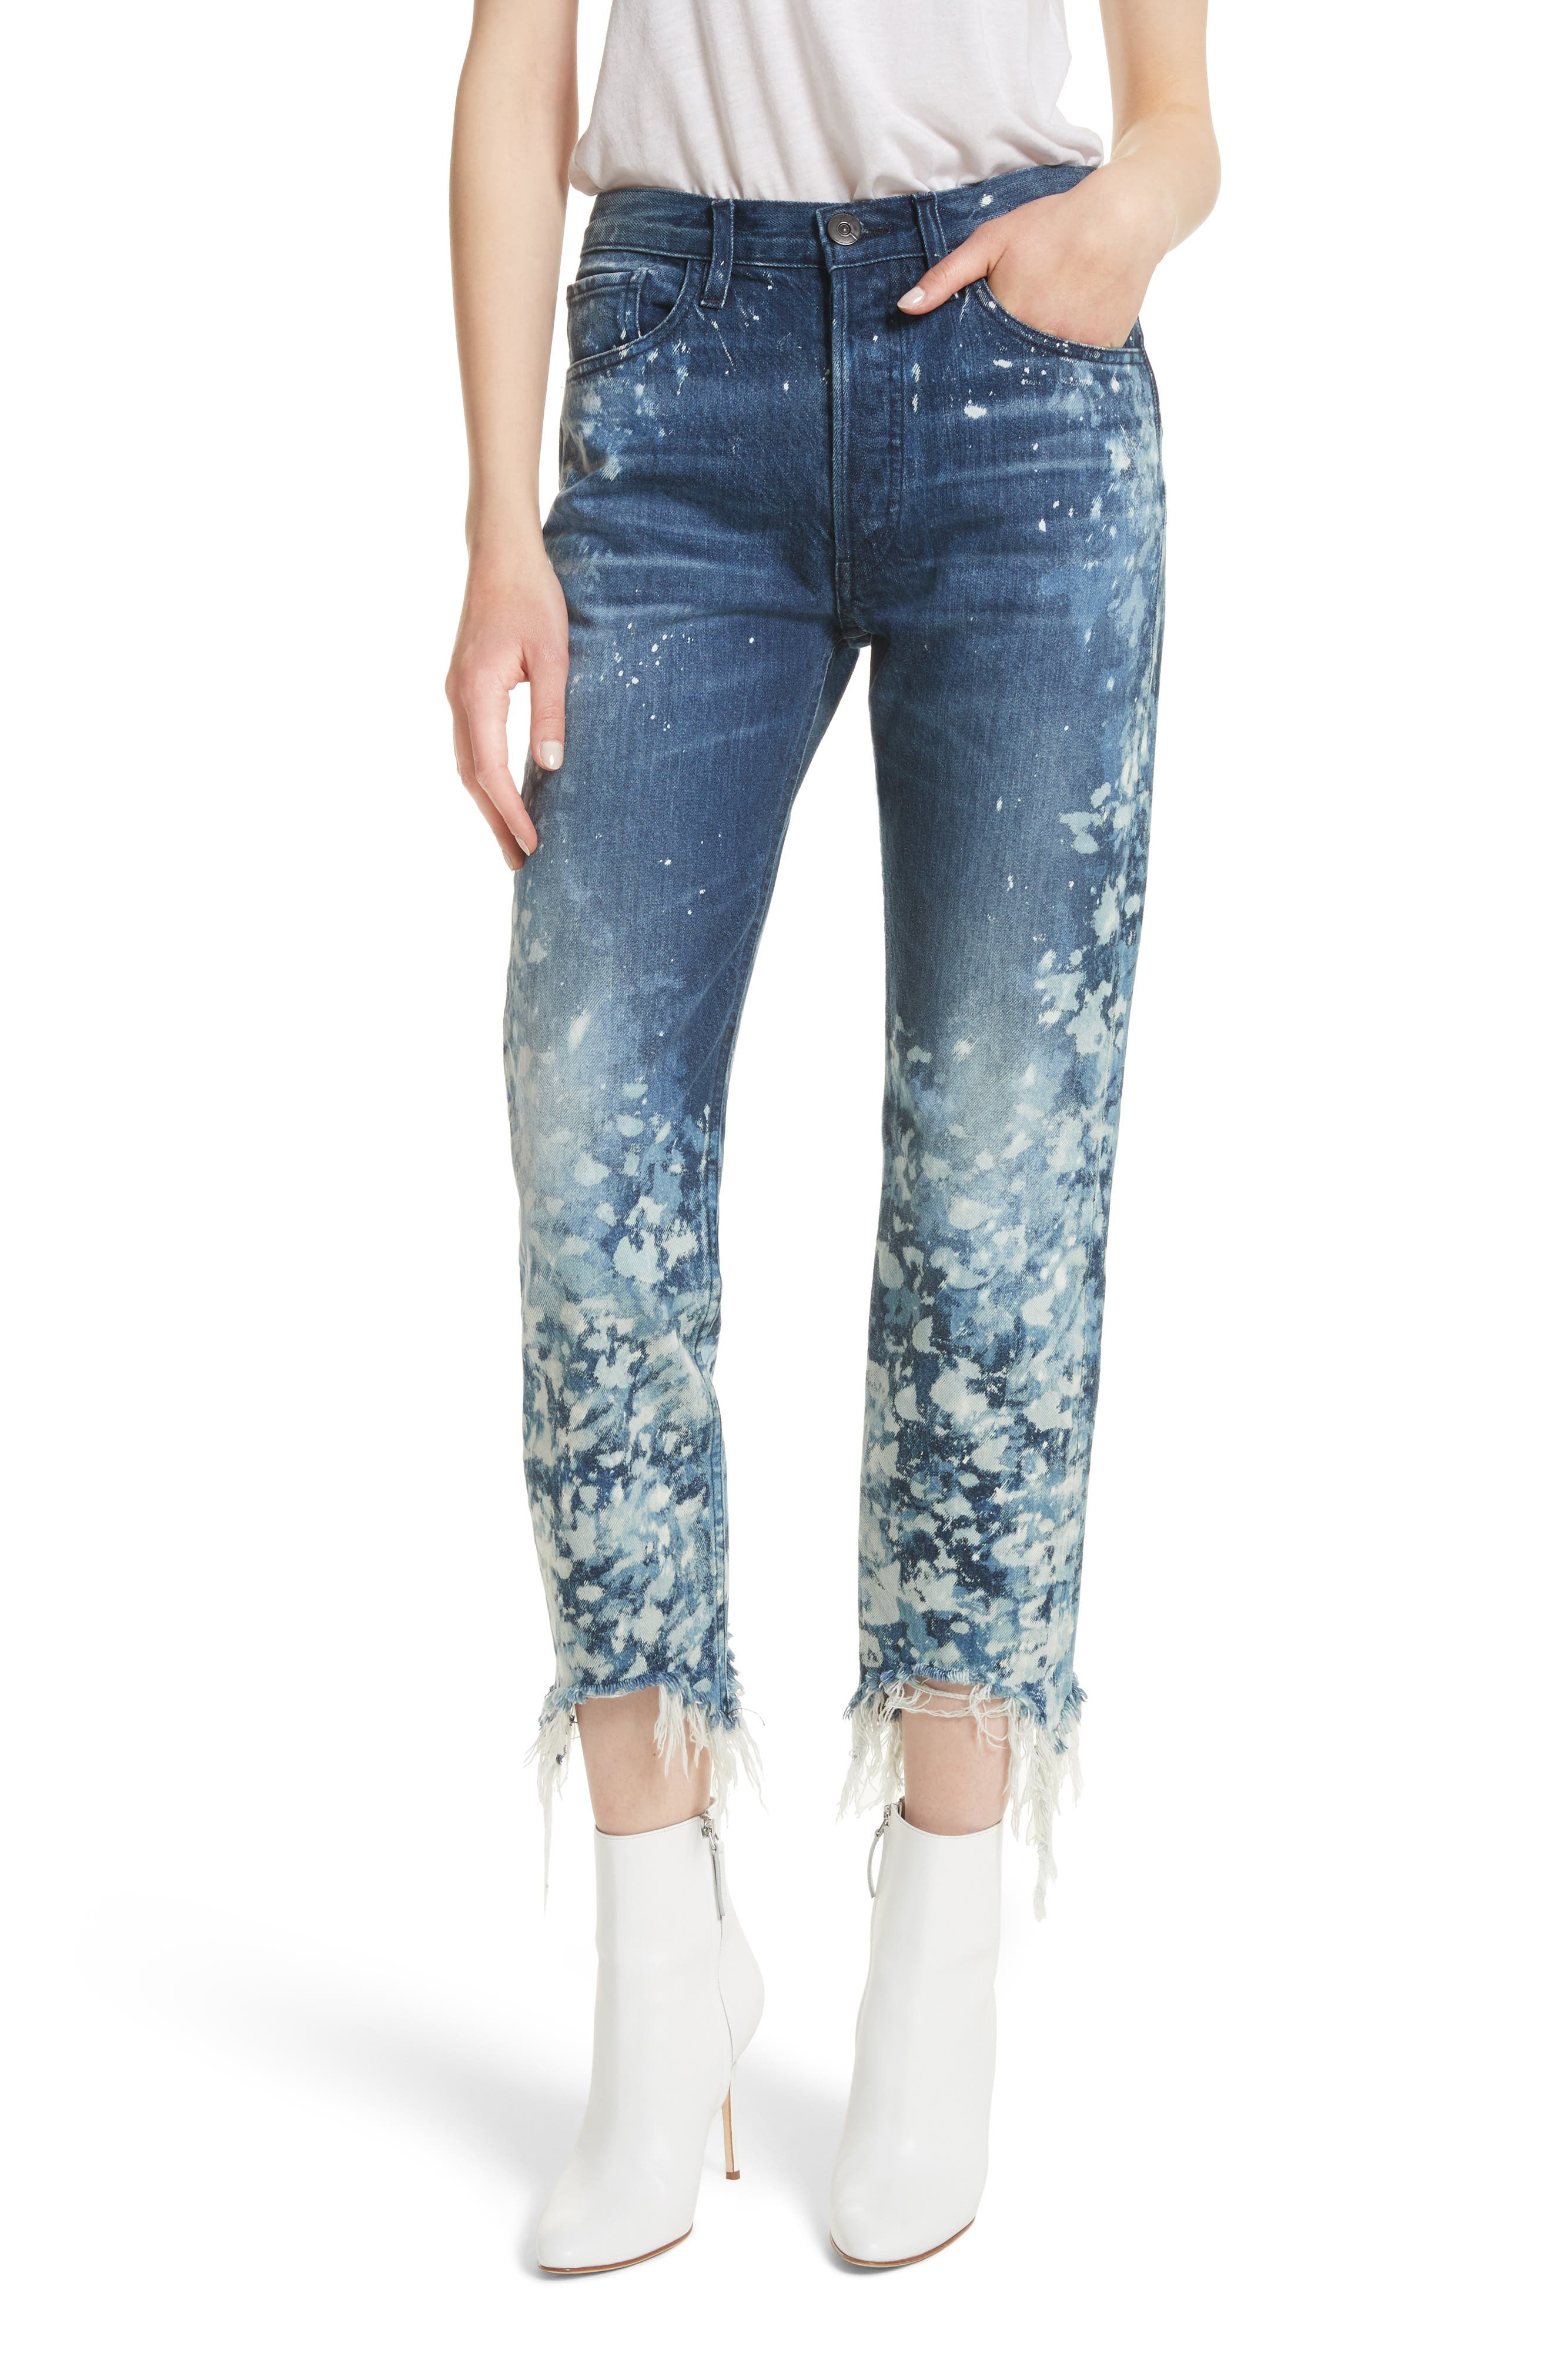 W3 Higher Ground Bleached Ankle Slim Fit Jeans,                             Main thumbnail 1, color,                             Stardust